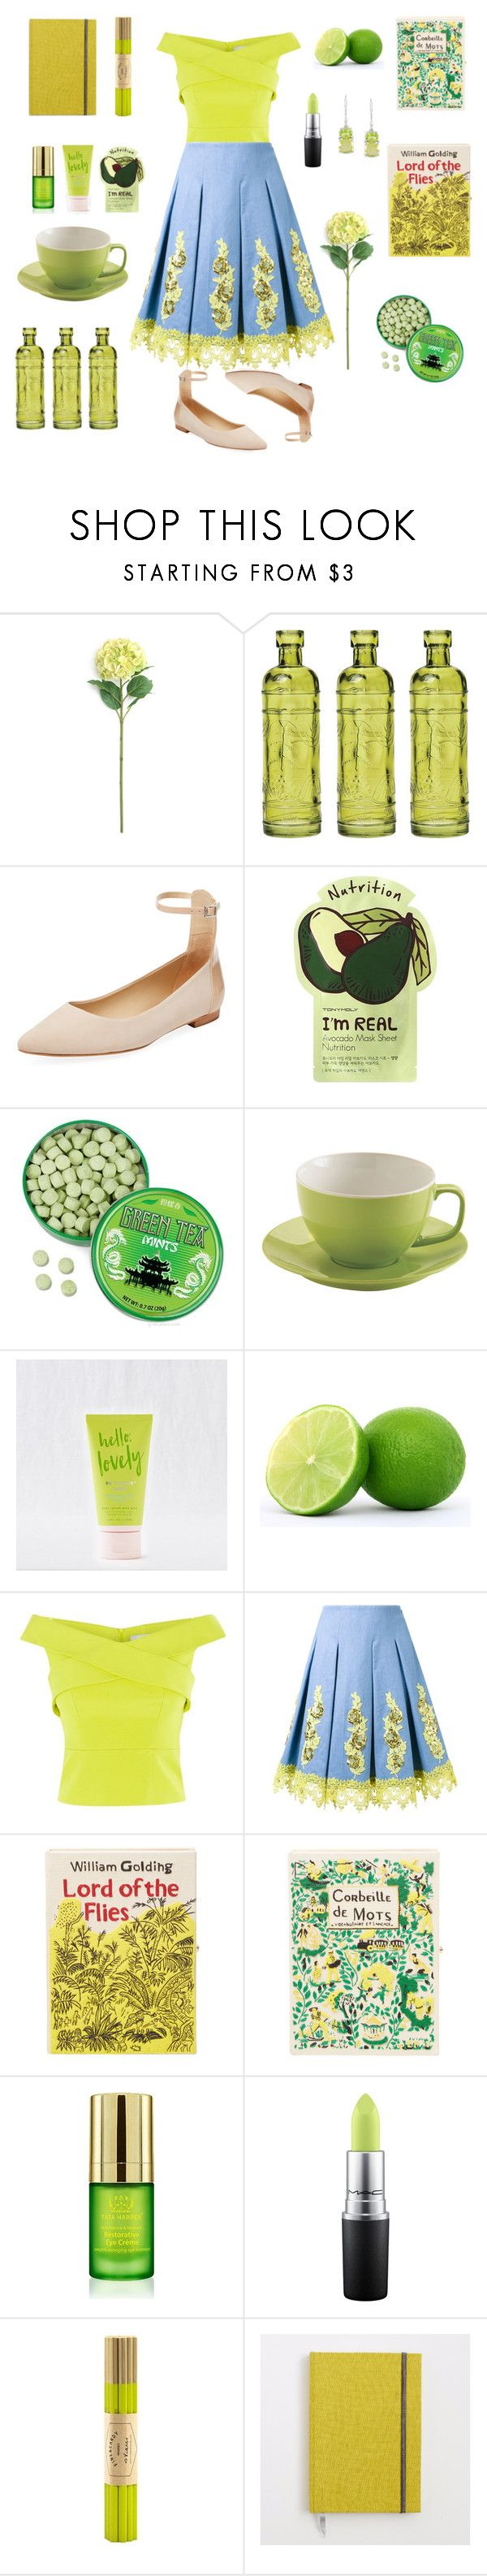 """Key Lime Pie"" by willinat ❤ liked on Polyvore featuring Cultural Intrigue, Schutz, Charlotte Russe, Price & Kensington, Aerie, Coast, DressCamp, Olympia Le-Tan, Tata Harper and MAC Cosmetics"